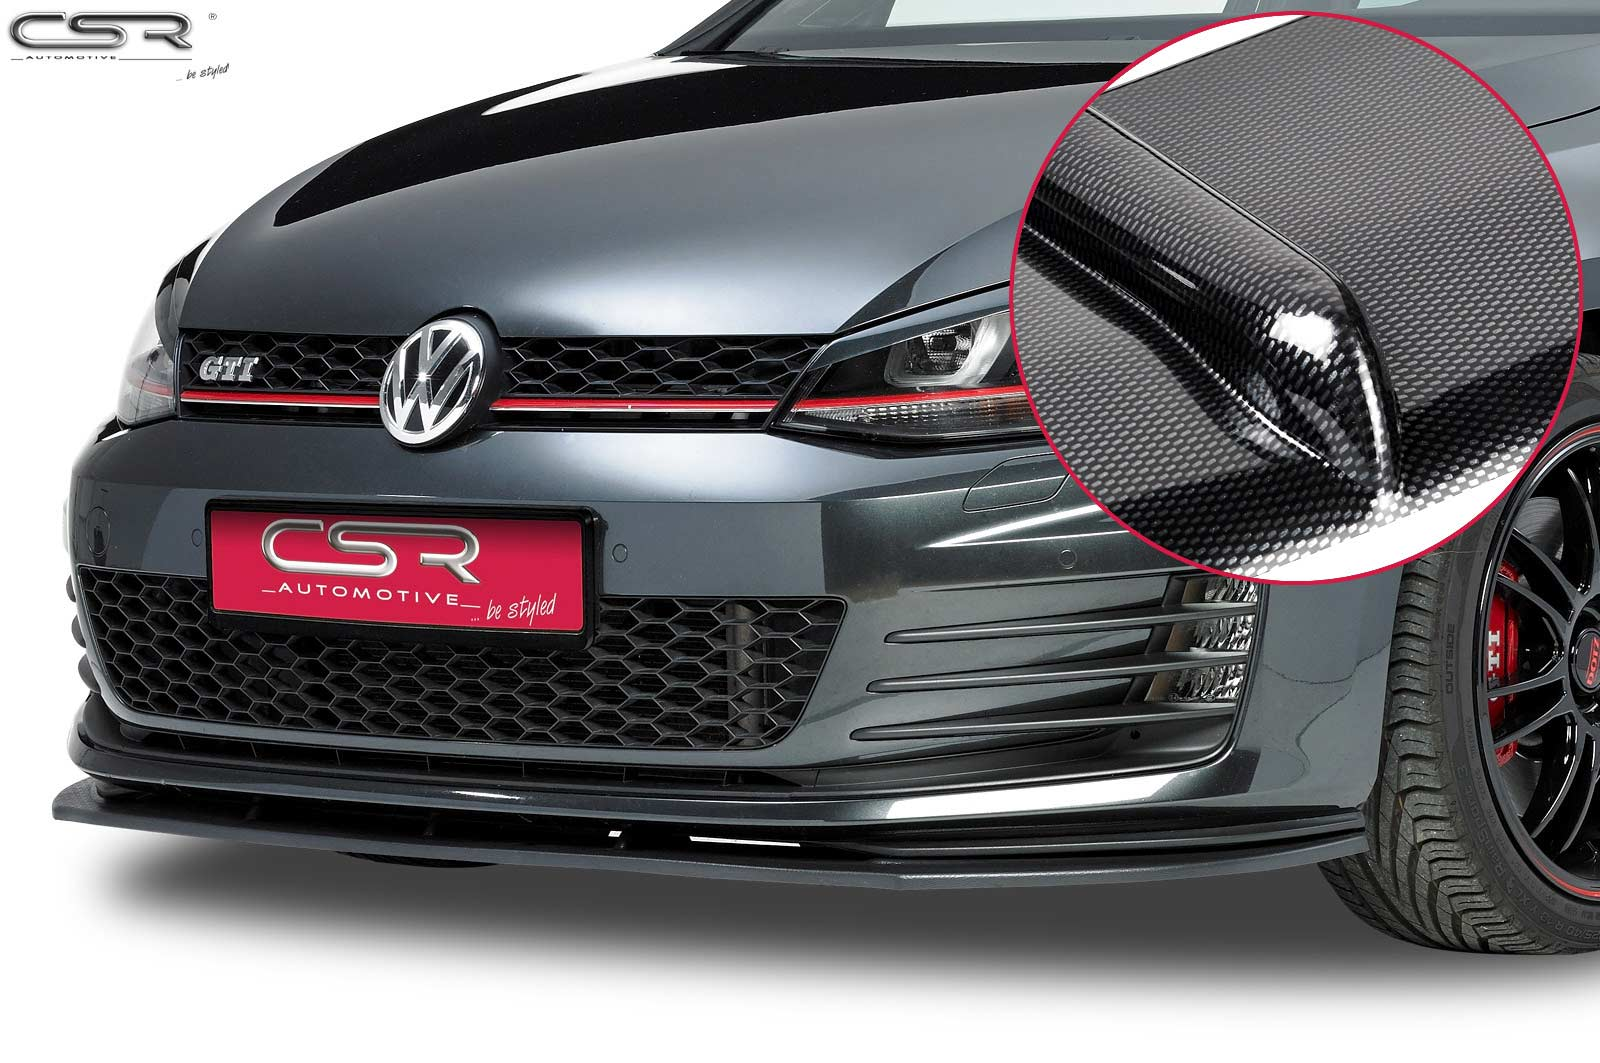 cupspoilerlippe carbon look mit abe f r vw golf 7 gti. Black Bedroom Furniture Sets. Home Design Ideas